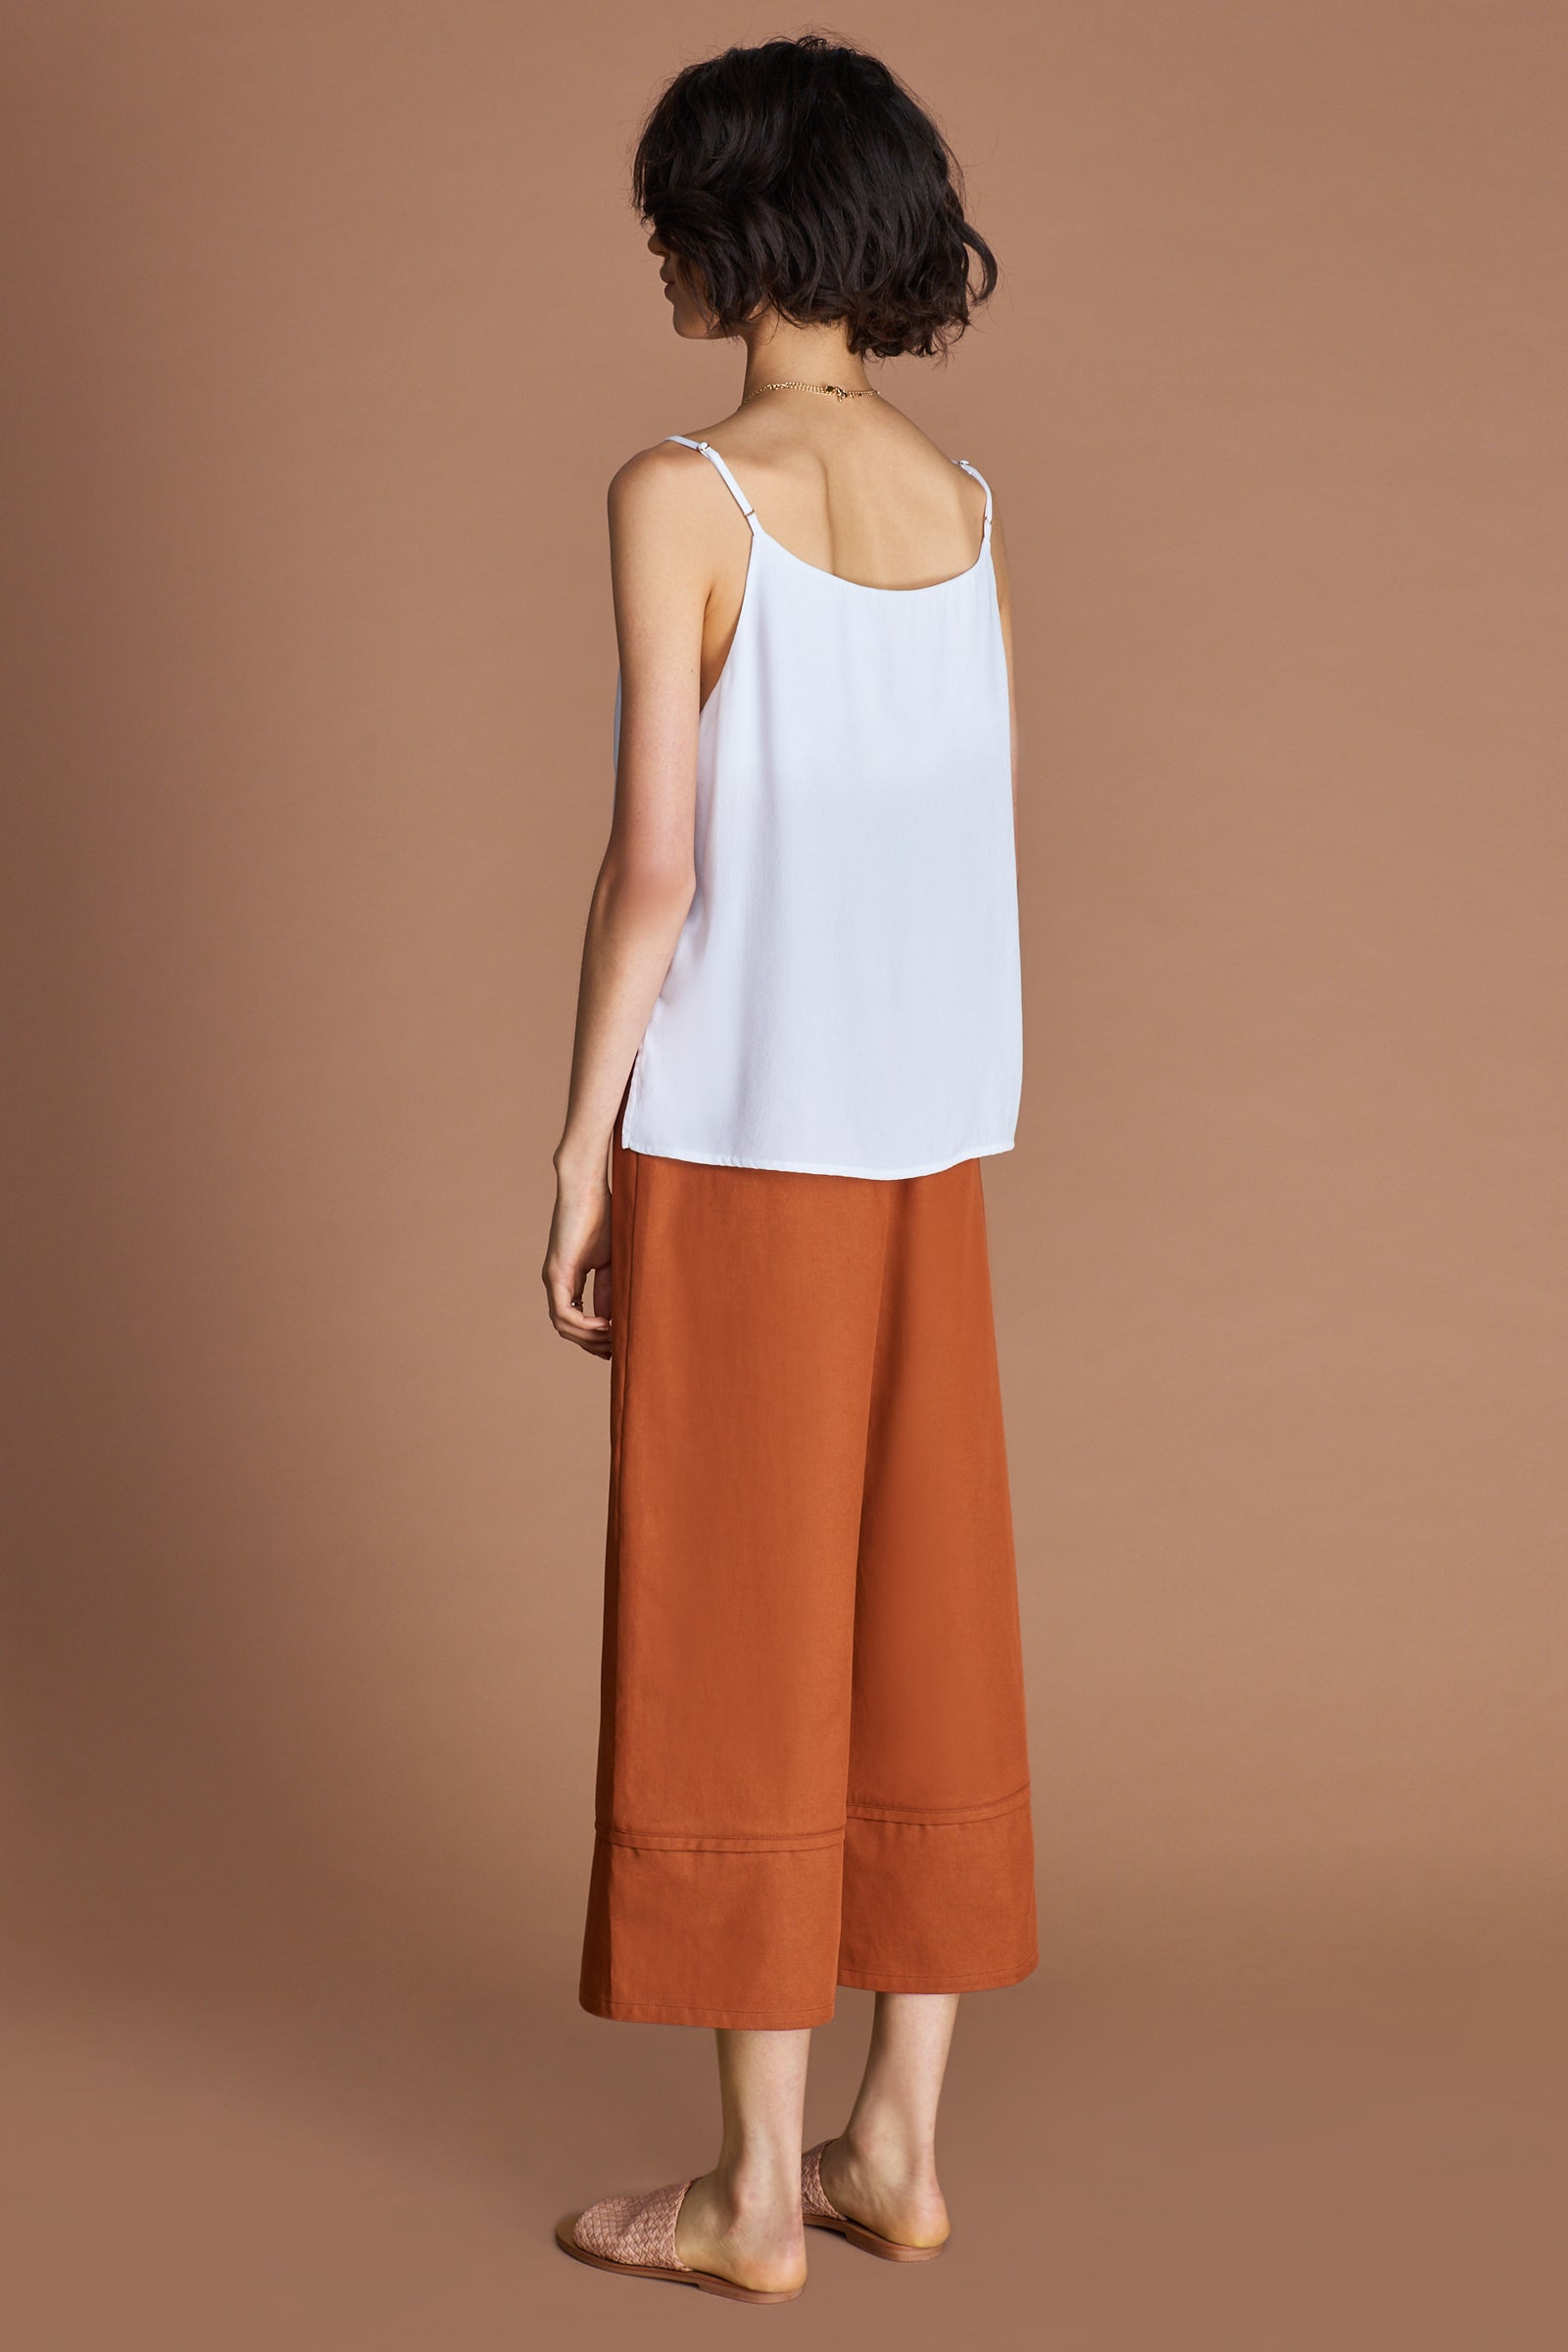 THE HANNI TOP